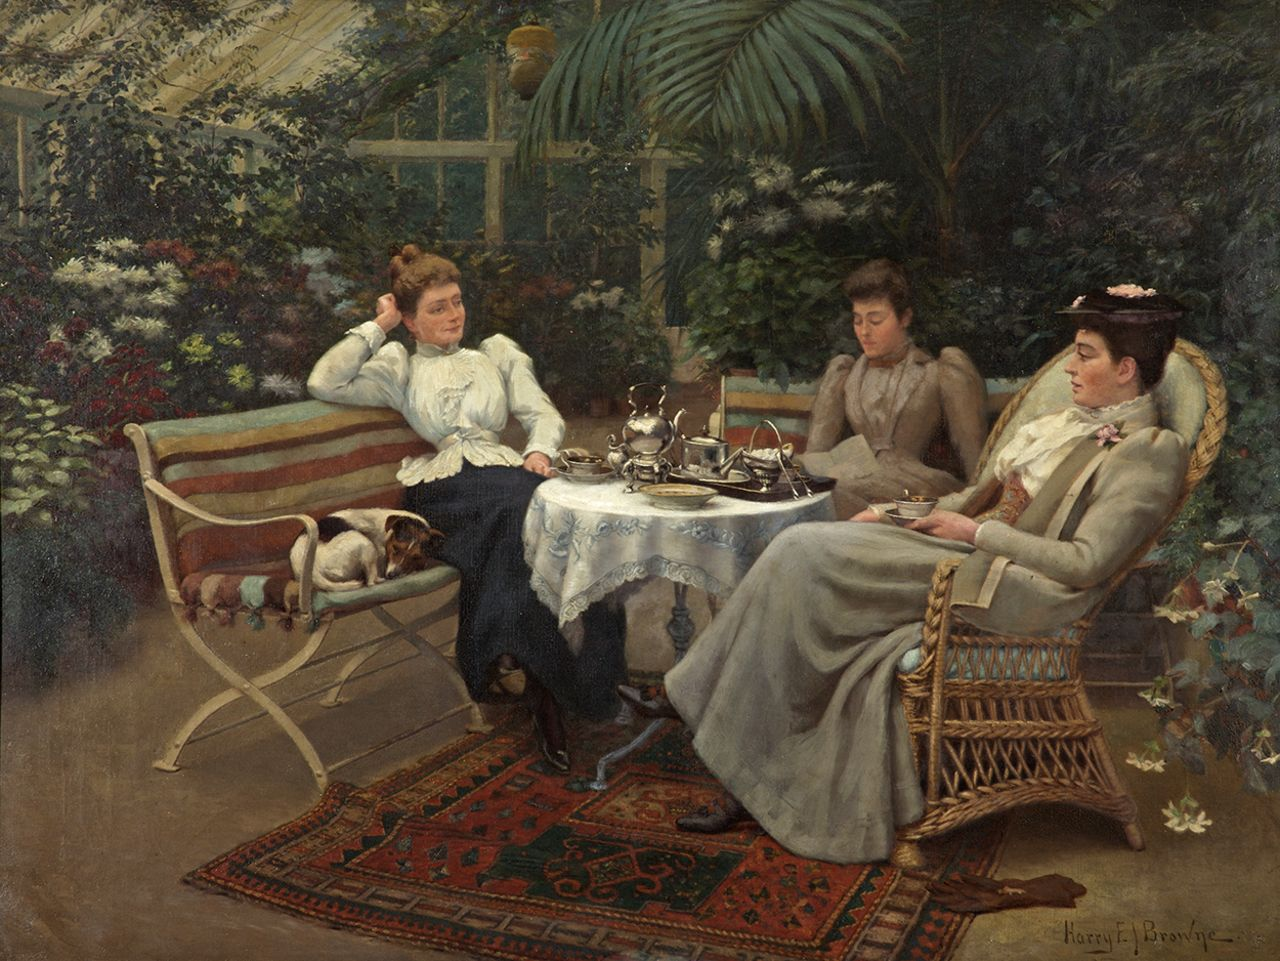 (1) Harry E. J. Browne, Tea in the Conservatory, ca. 1890 (photograph reproduced with the kind permission of the Russell-Cotes Art Gallery & Museum, Bournemouth)